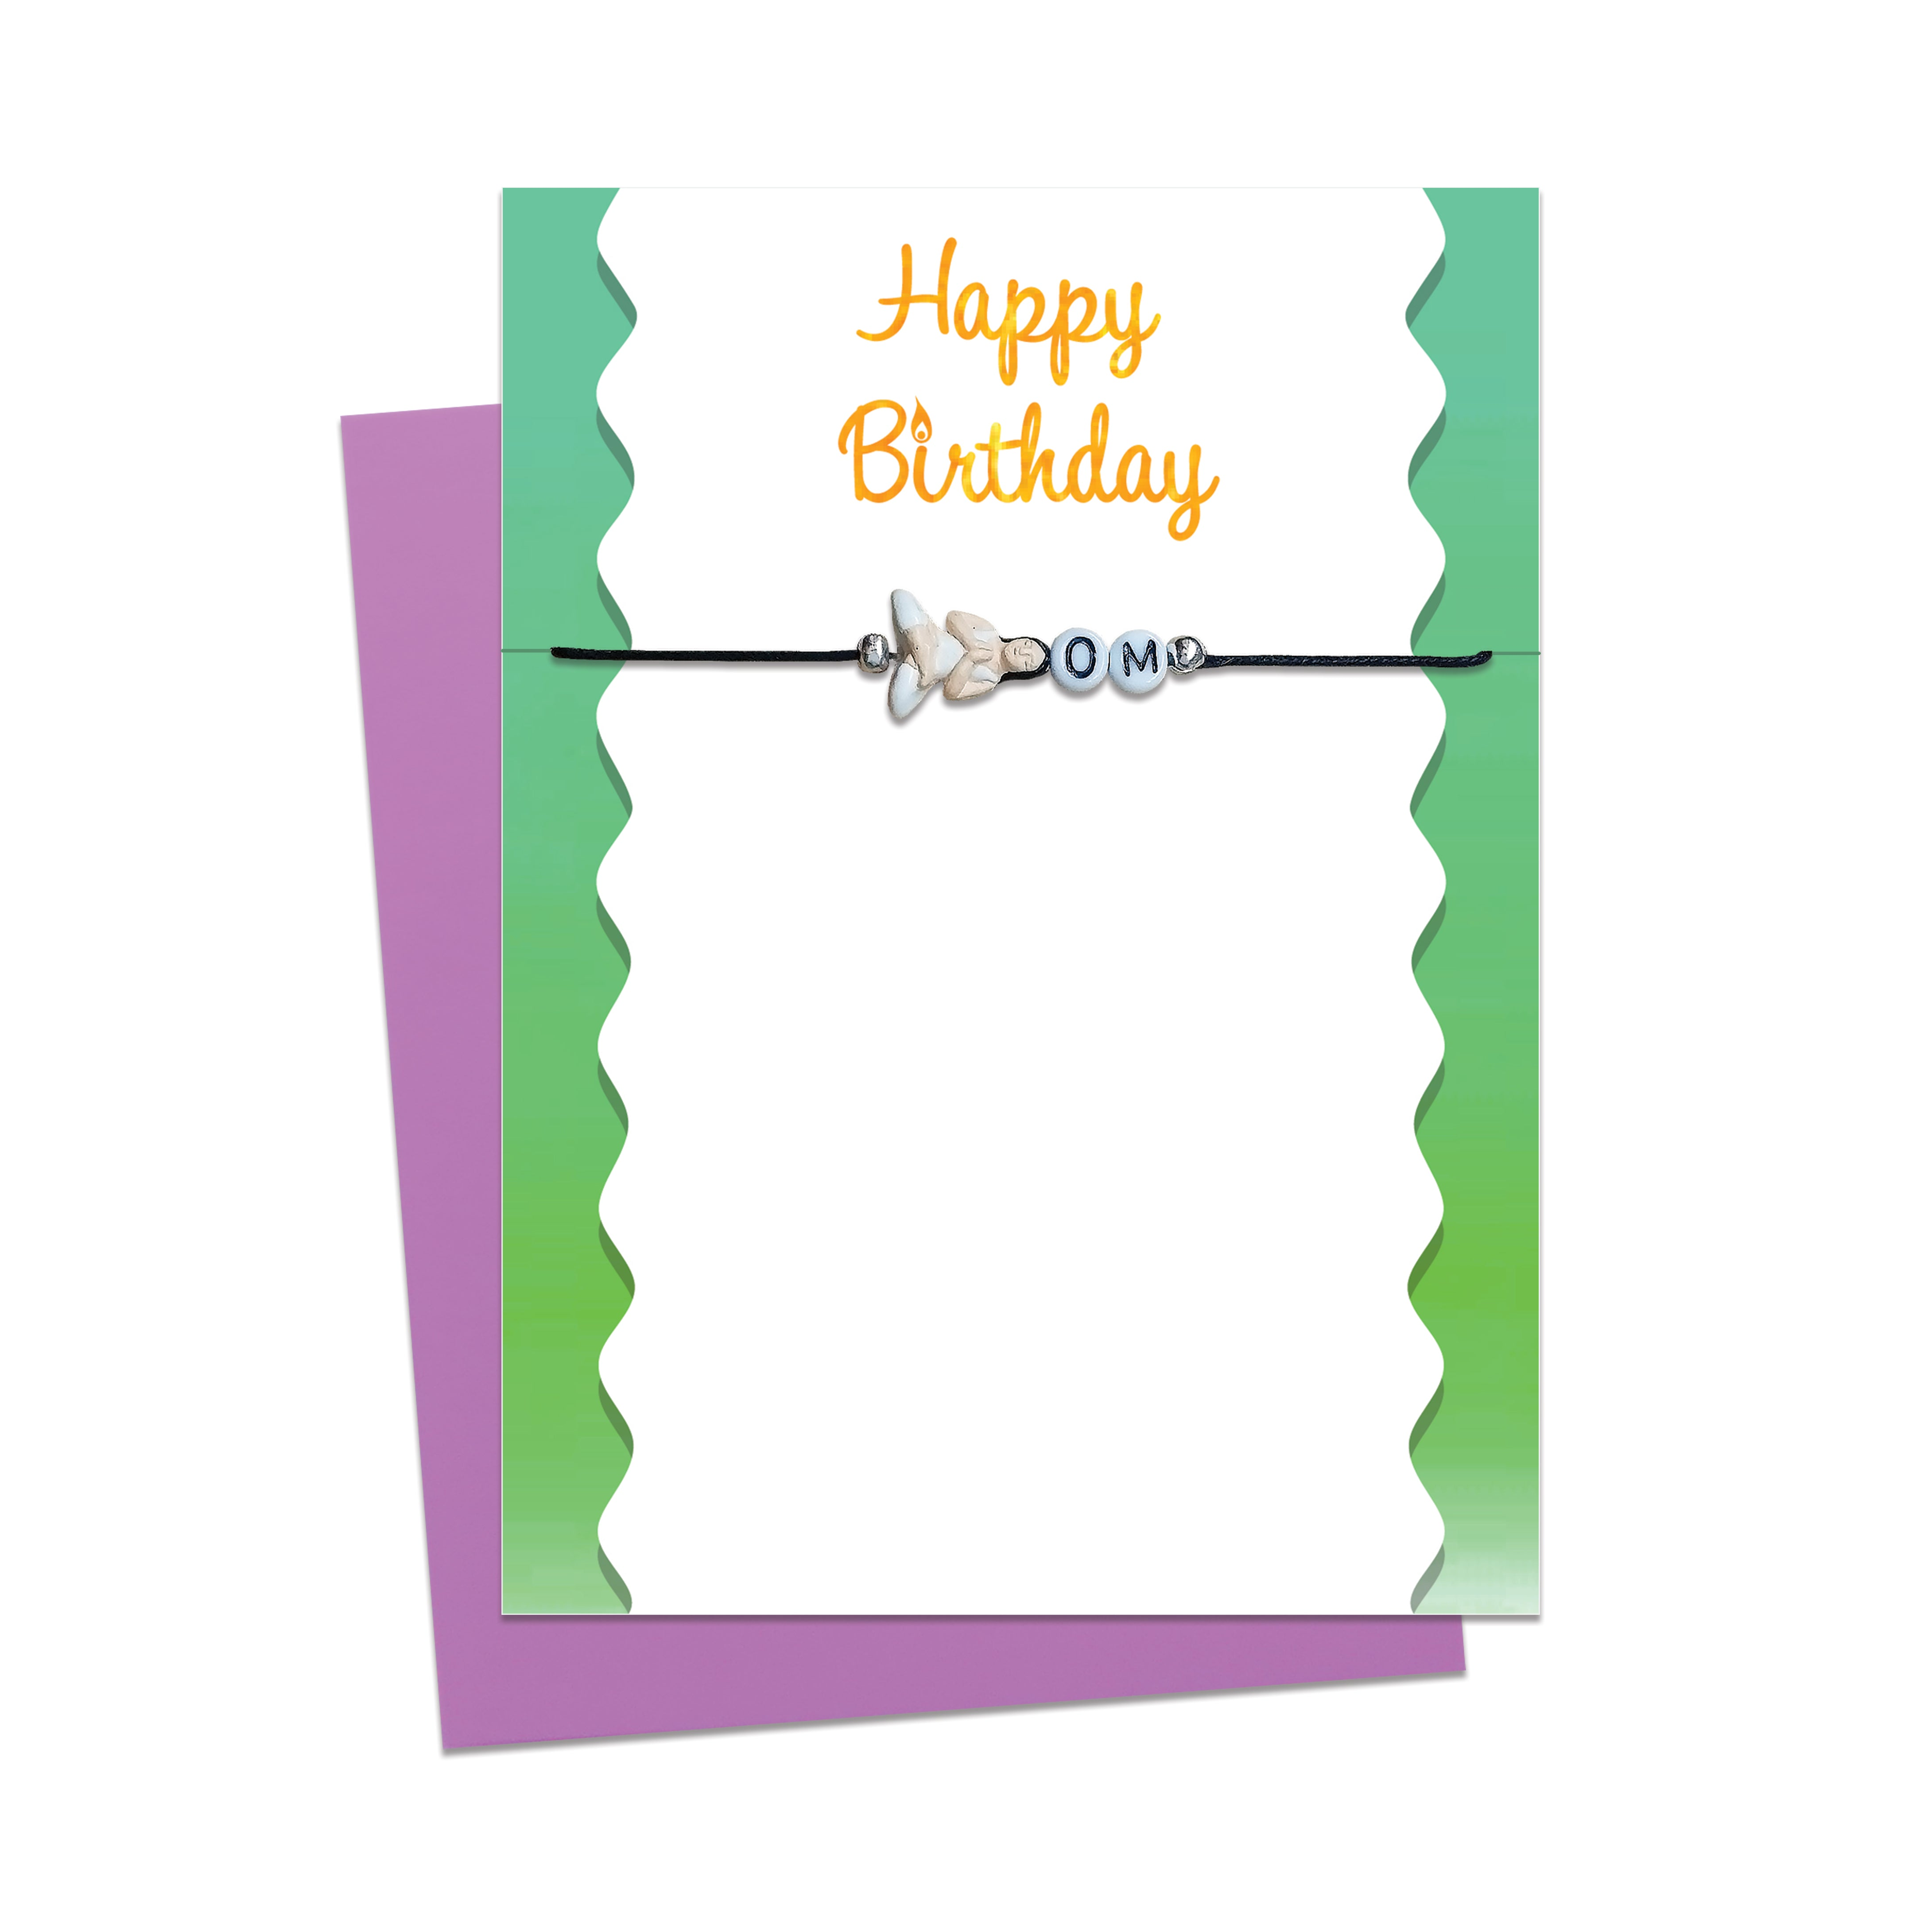 Yoga Birthday Card with Message Bracelet Gift Free Shipping Vui Vie